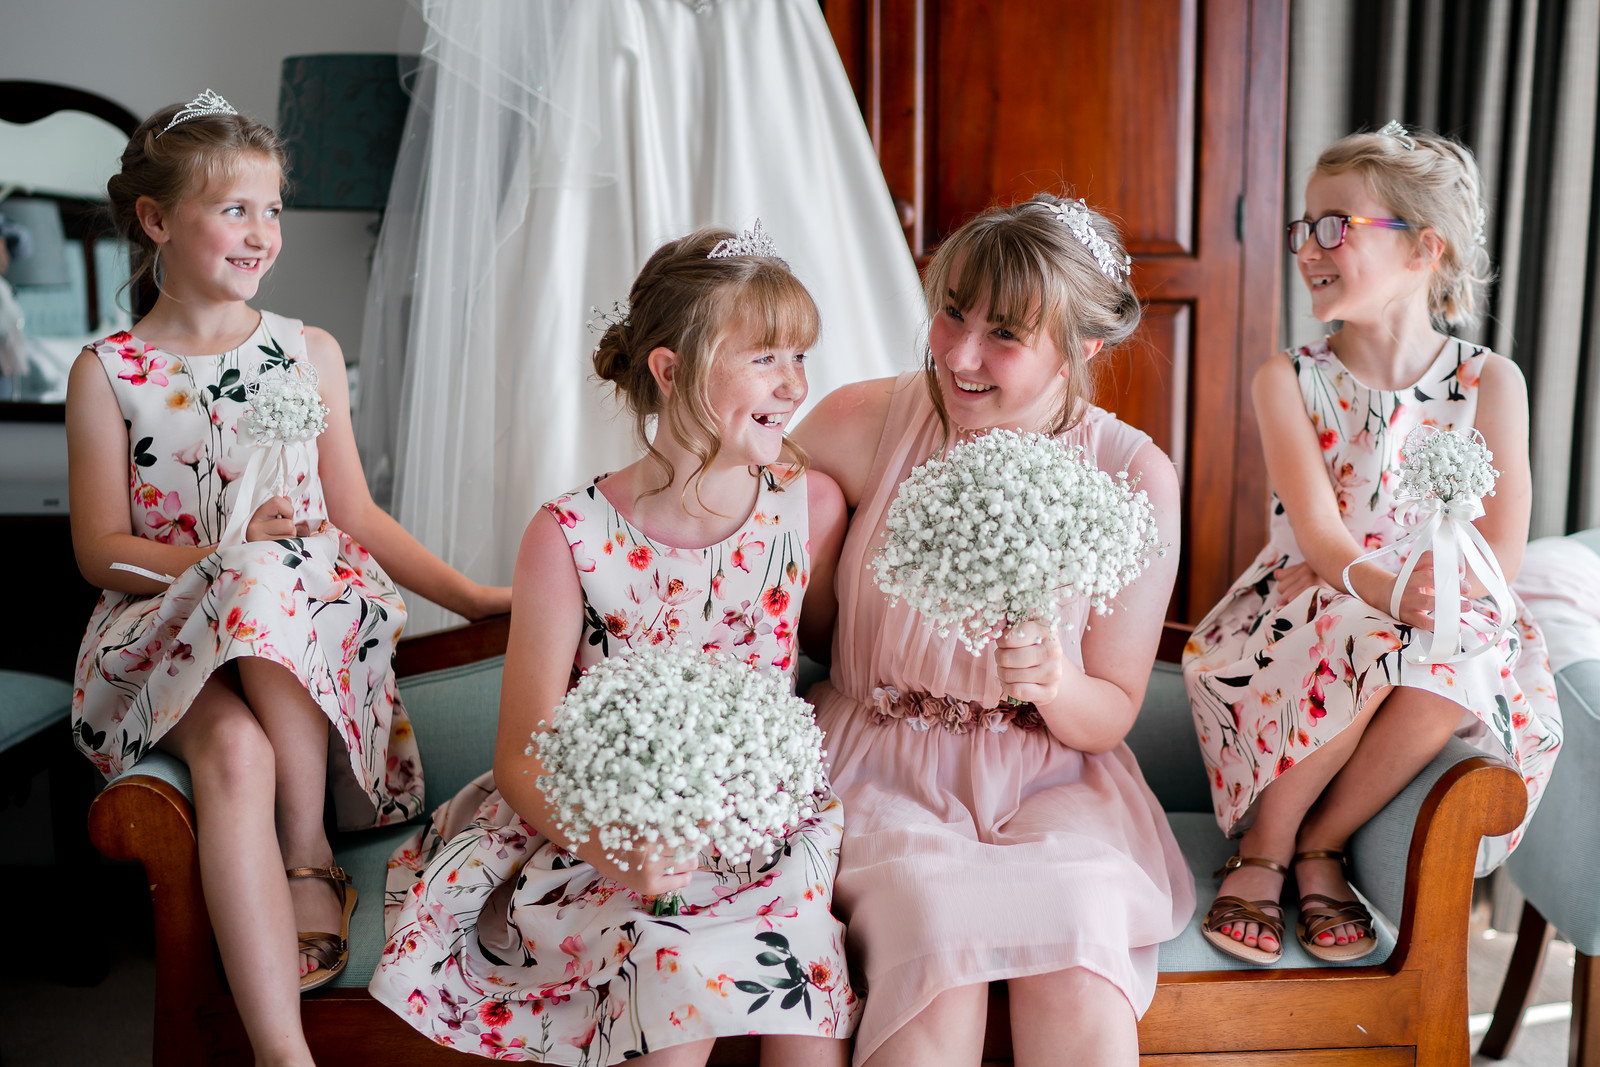 4 young bridesmaids laughing and smiling together